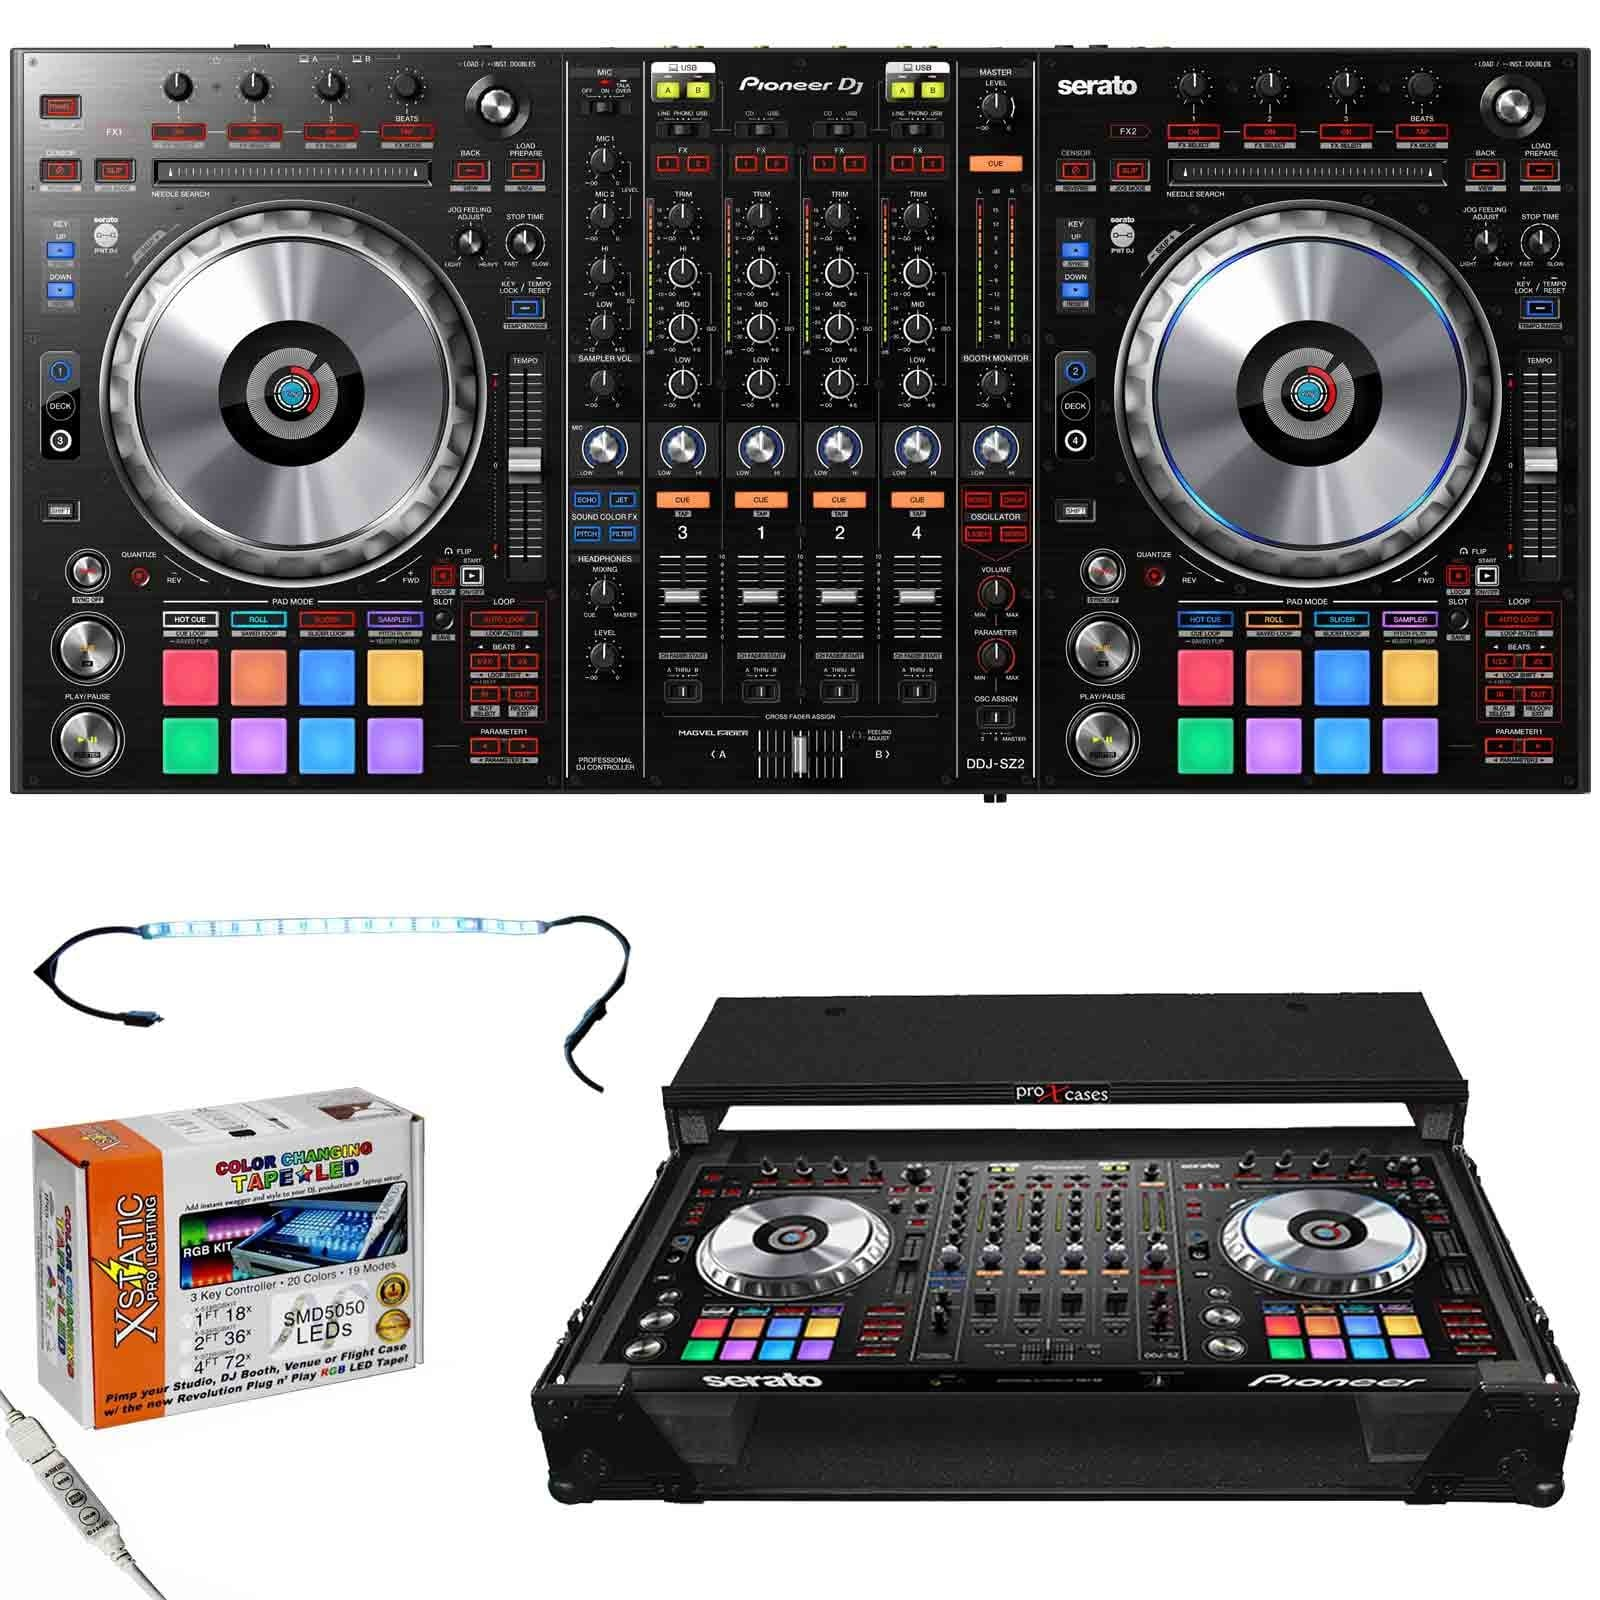 pioneer-ddj-sz2-flagship-4-channel-mixer-serato-dj-controller-with-led-kit-black-.jpg